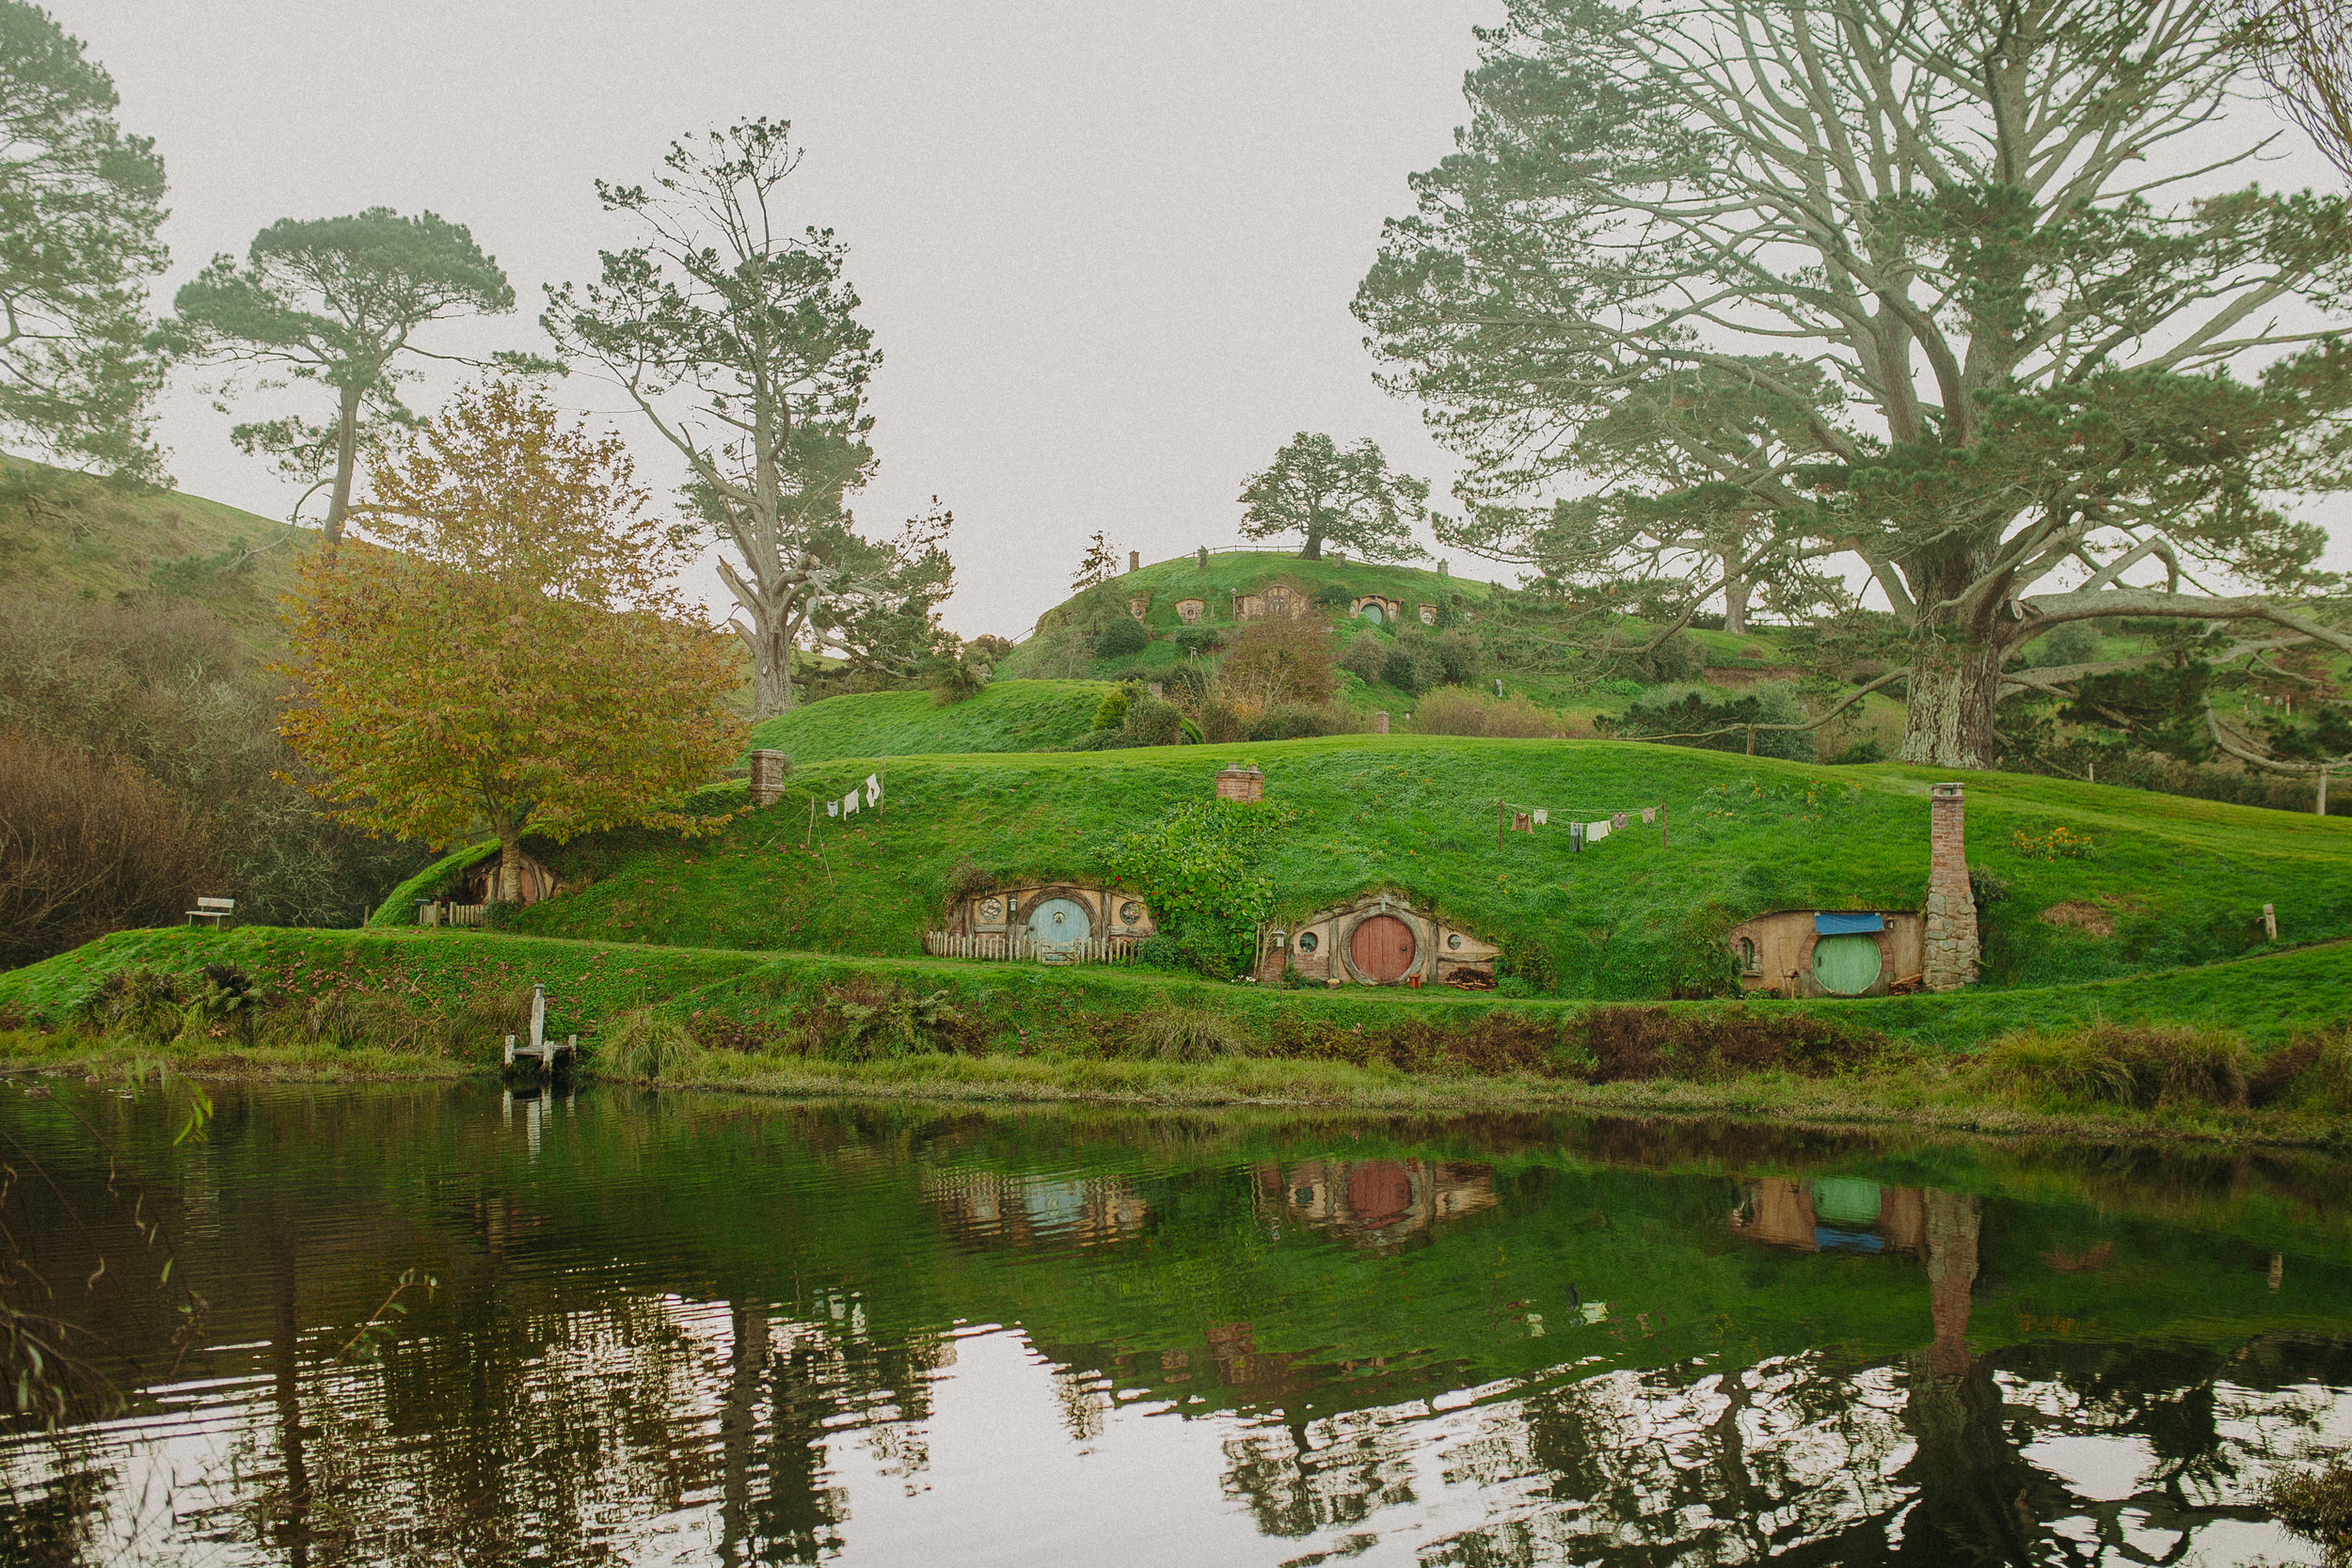 hobbiton-new-zealand-lord-of-the-rings-tour-21.jpg